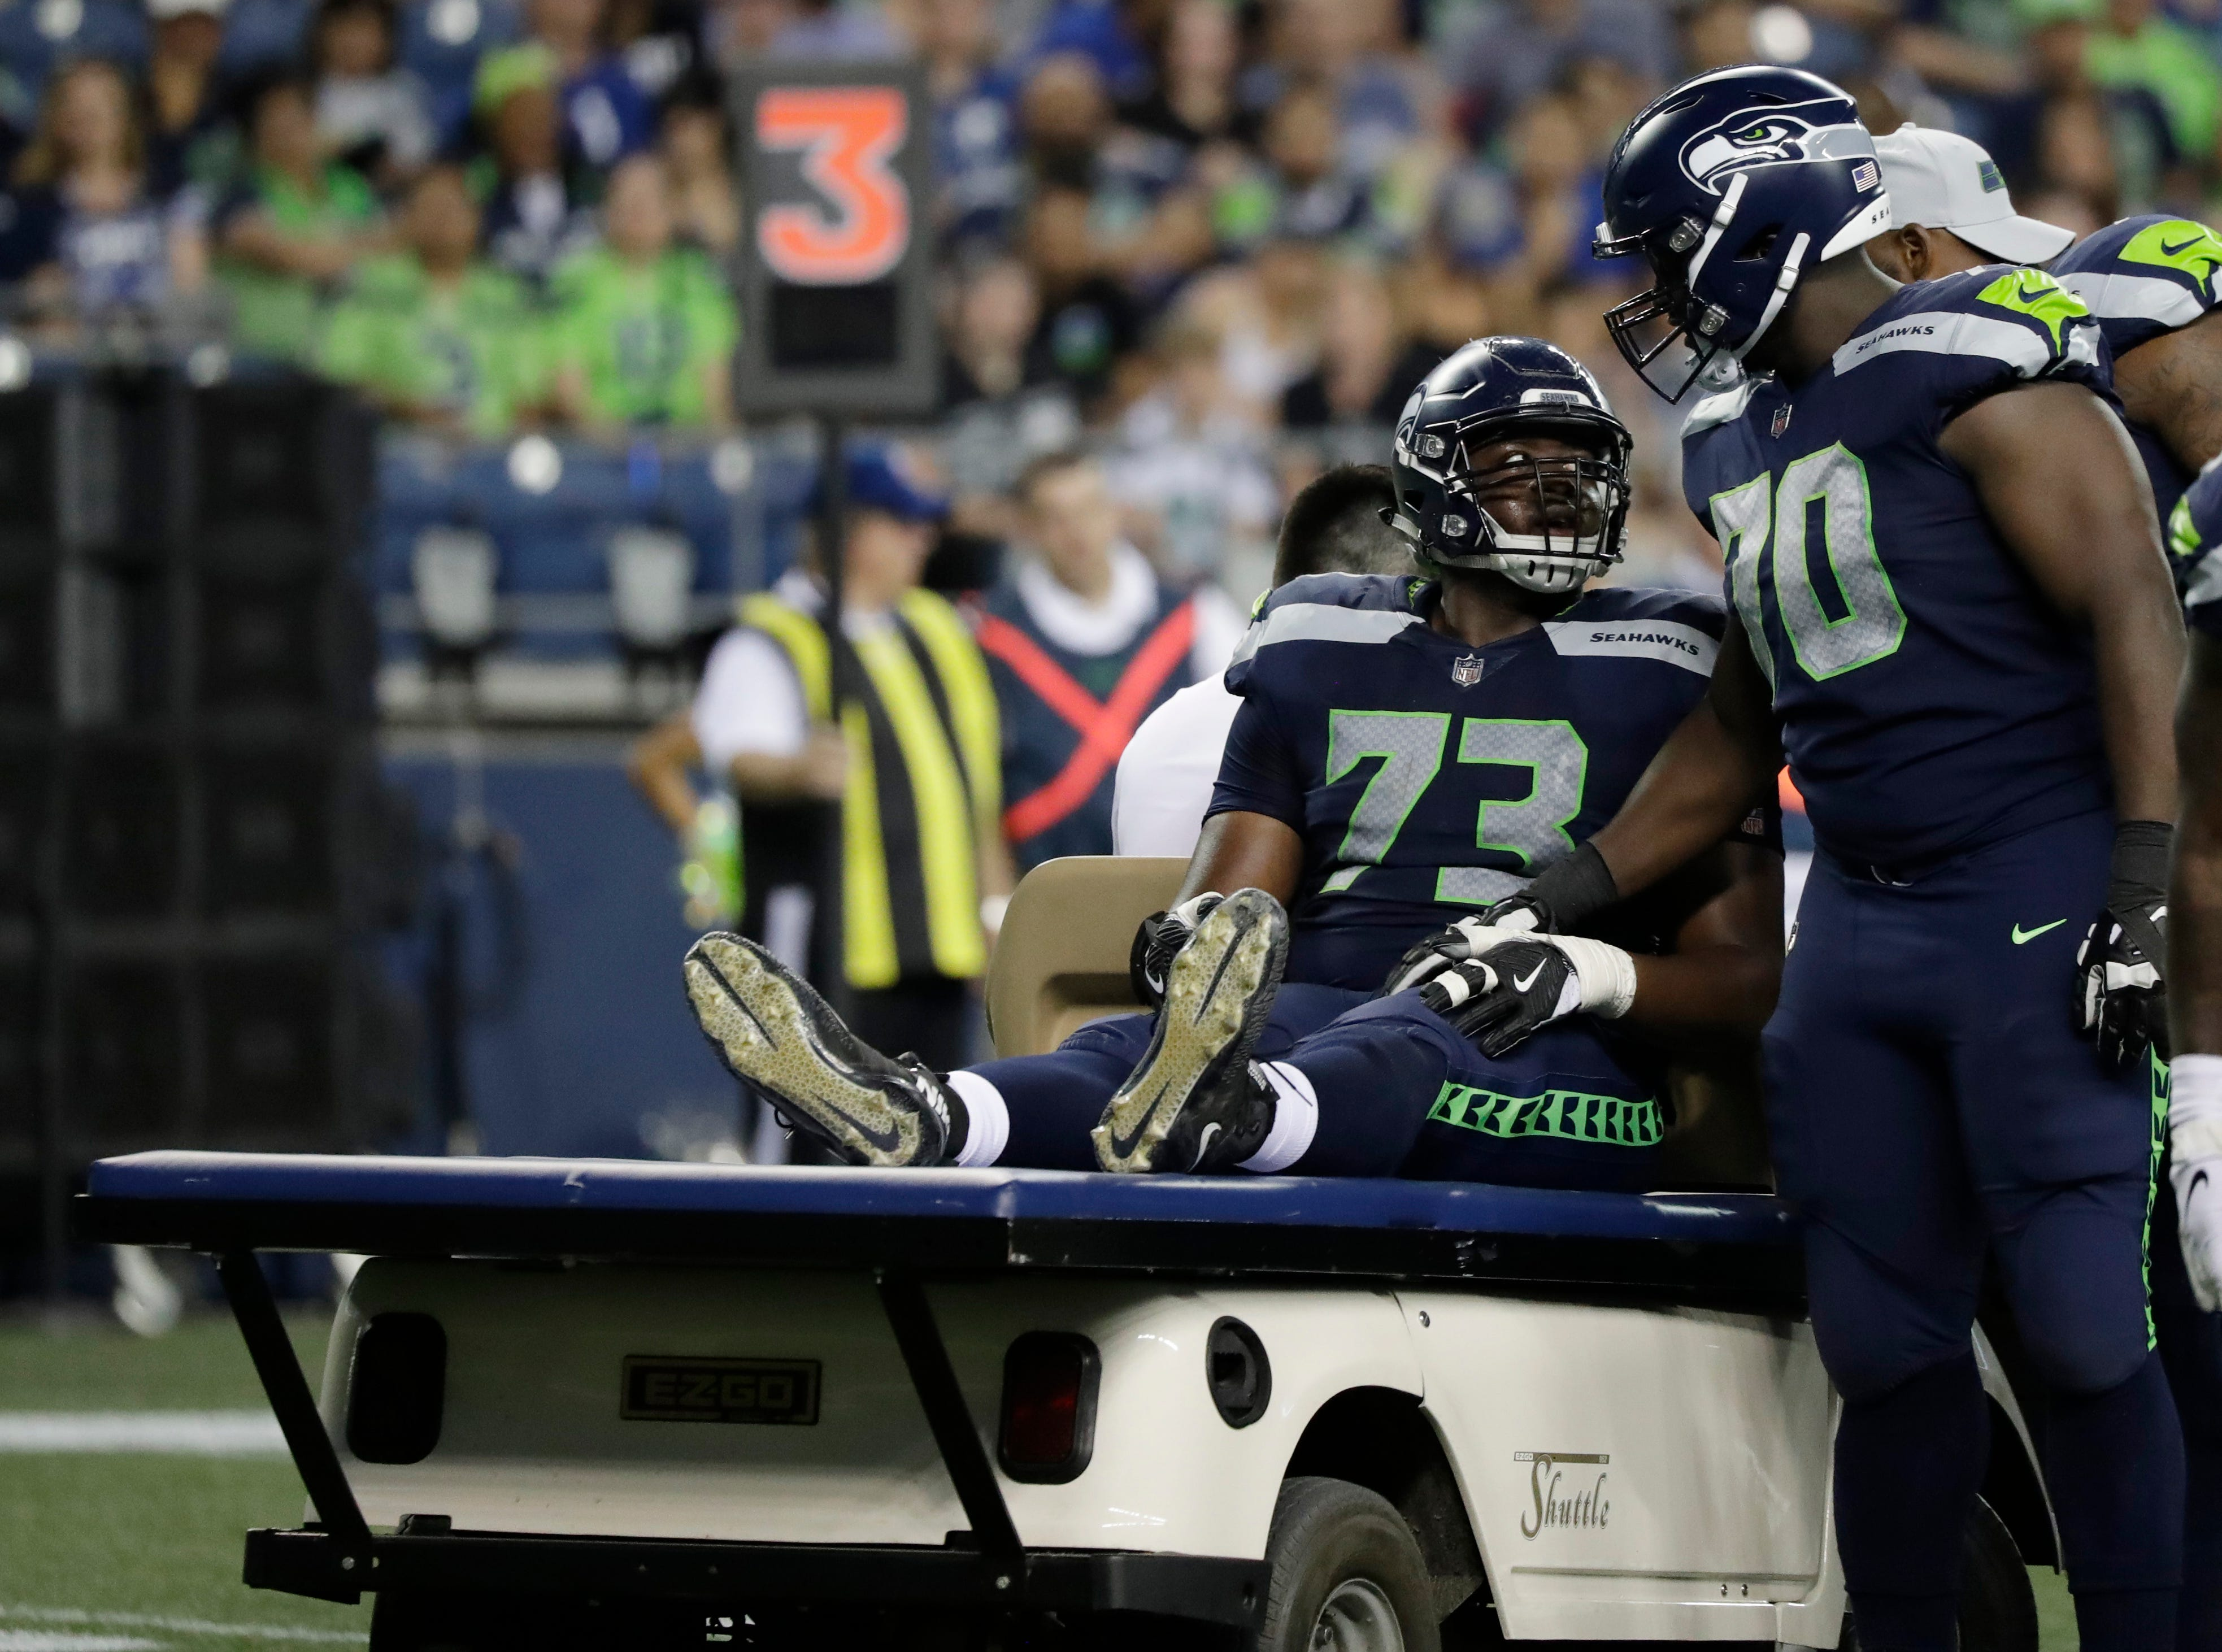 Seattle Seahawks offensive tackle Jamarco Jones (73) is comforted by teammates, including offensive guard Rees Odhiambo, right, as he is taken off the field on a cart during the second half of the team's NFL football preseason game against the Indianapolis Colts, Thursday, Aug. 9, 2018, in Seattle. (AP Photo/Elaine Thompson)